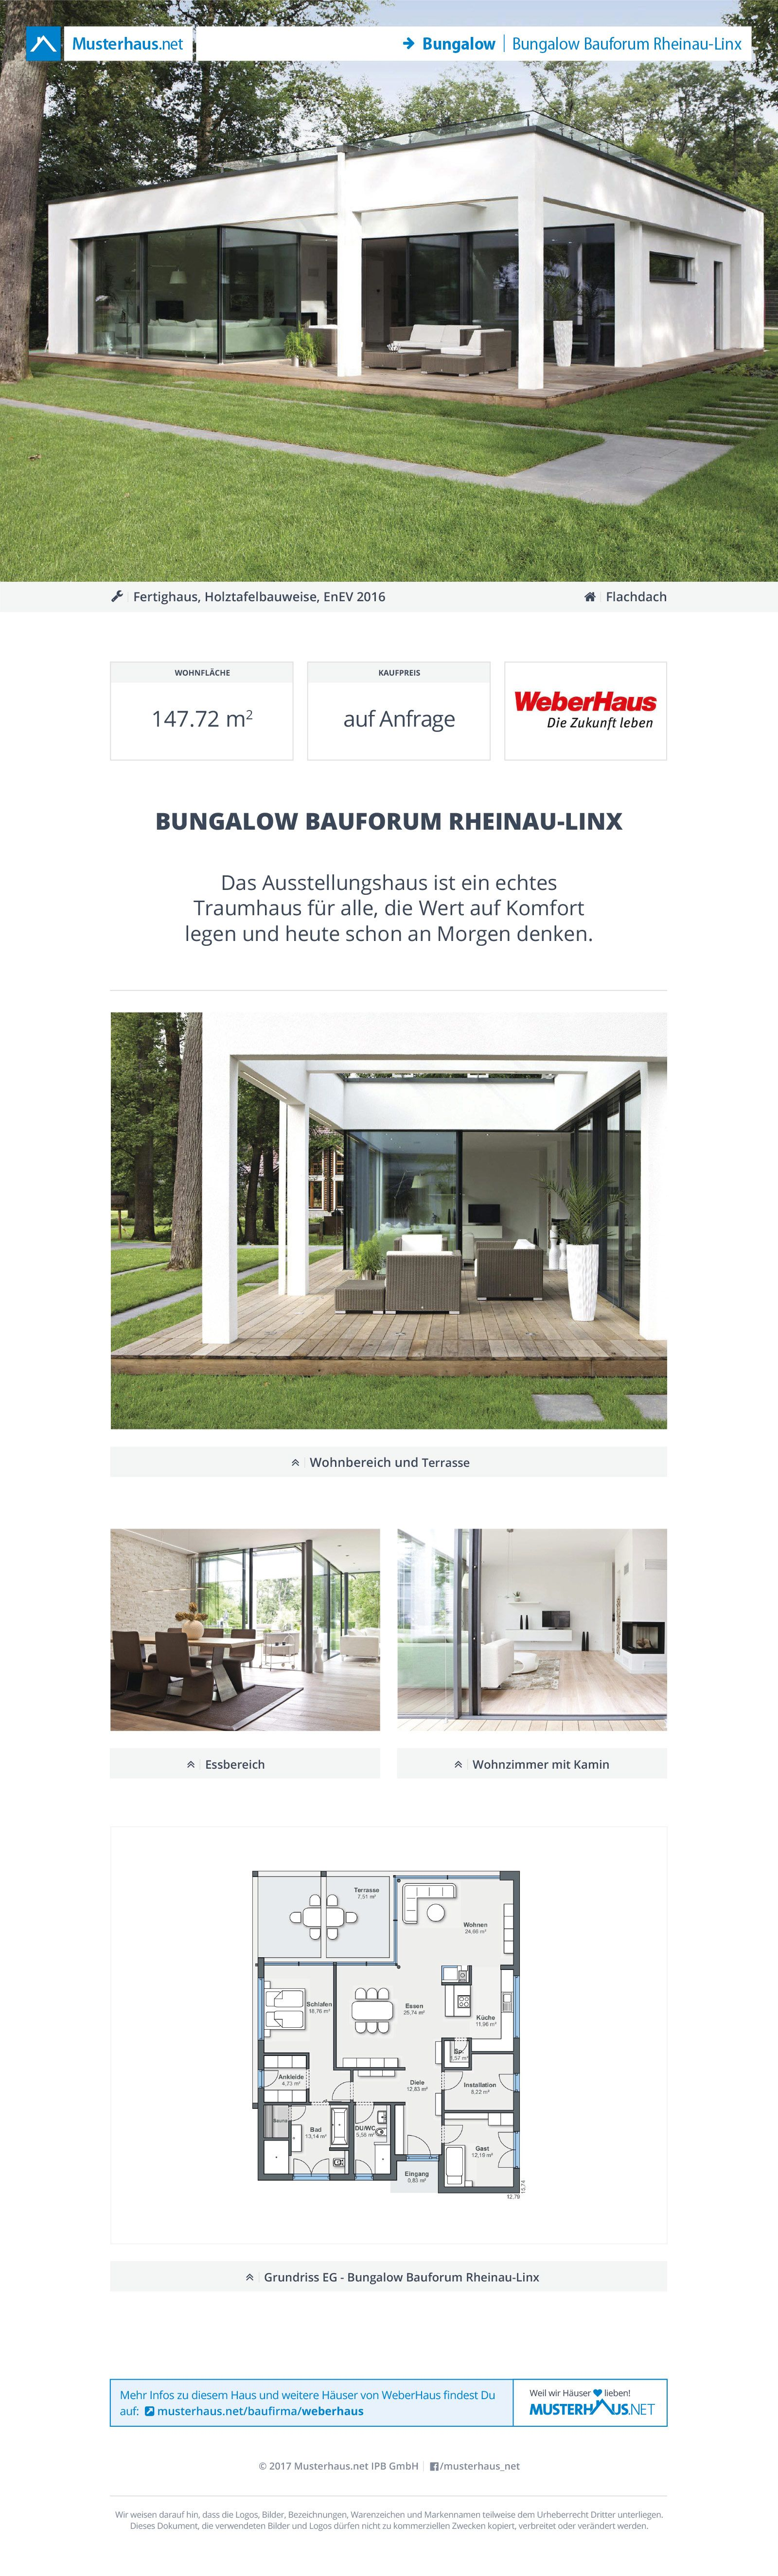 bungalow bauforum rheinau linx modern homes haus bungalow und weber haus. Black Bedroom Furniture Sets. Home Design Ideas